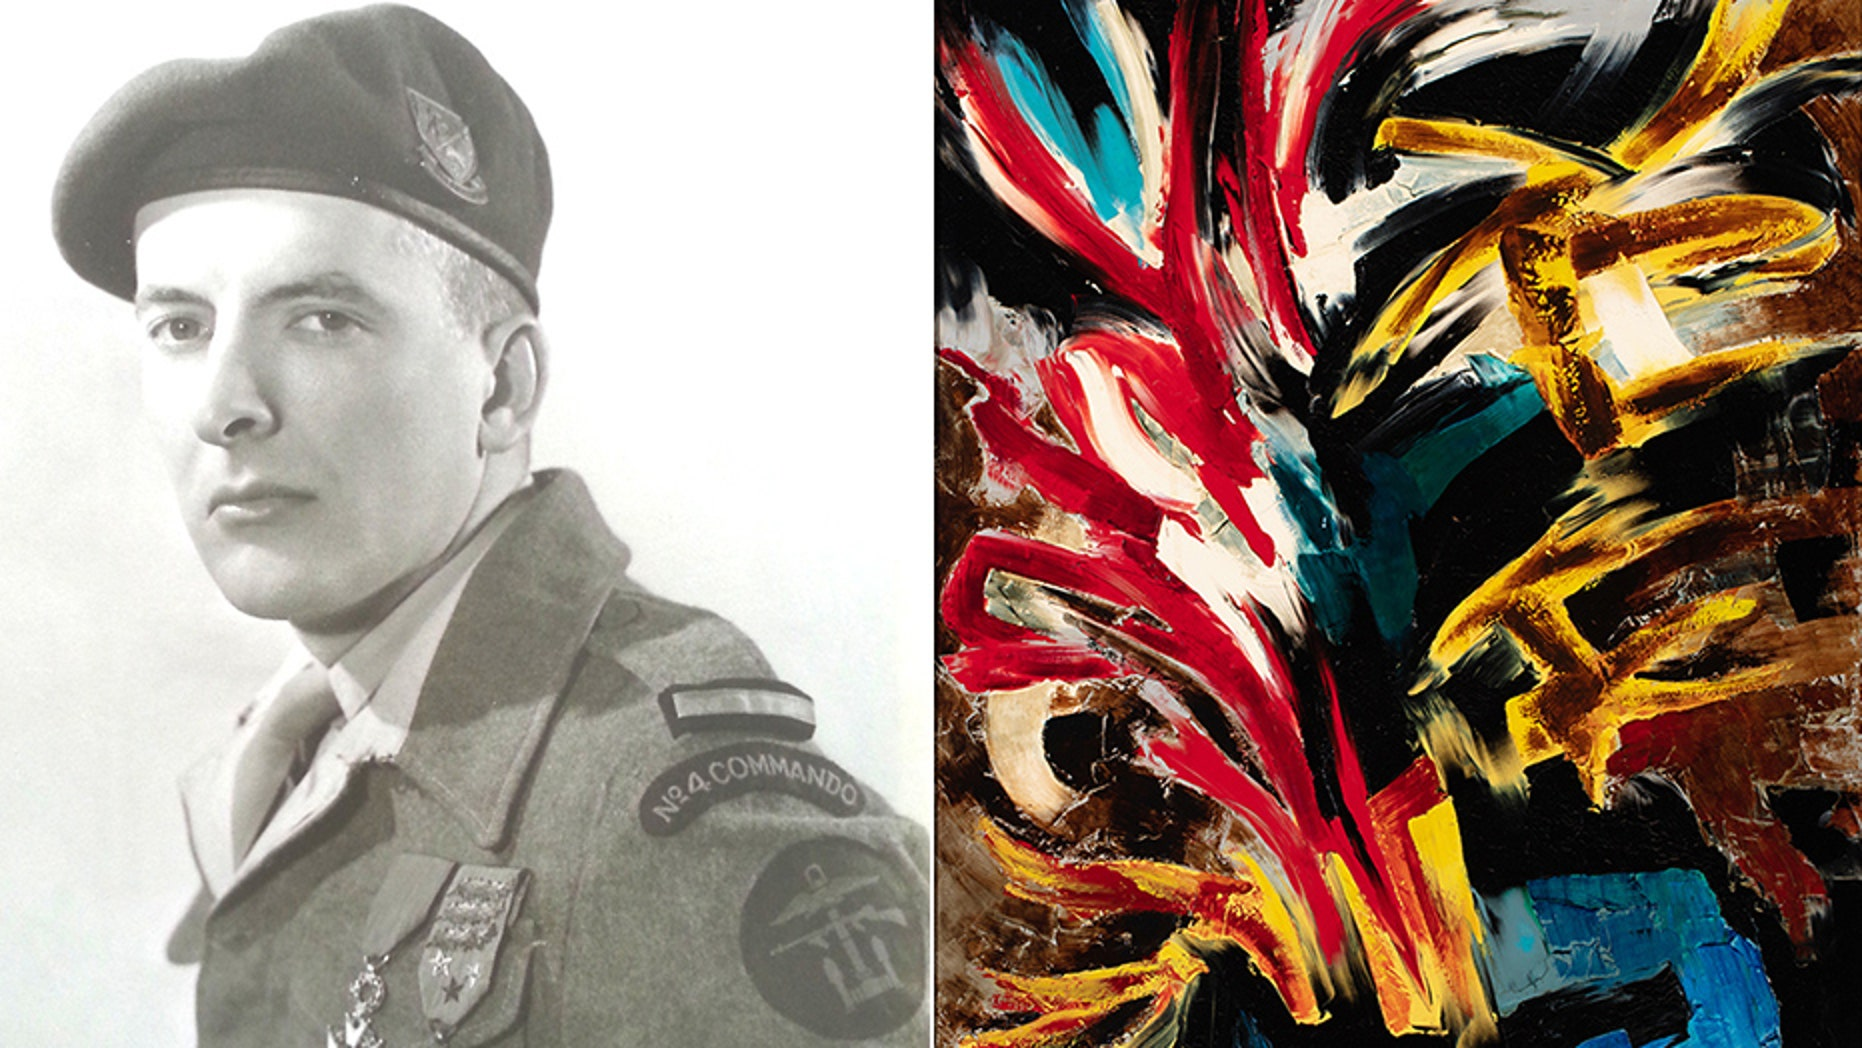 """Guy de Montlaur, a French World War II soldier, has a series of his paintings now on display at the National World War II Museum in New Orleans. At right is his 1957 painting """"Fire"""", which the Museum says is titled as a """"reference to his wartime experiences"""". (National World War II Museum/Courtesy Montlaur Family)"""